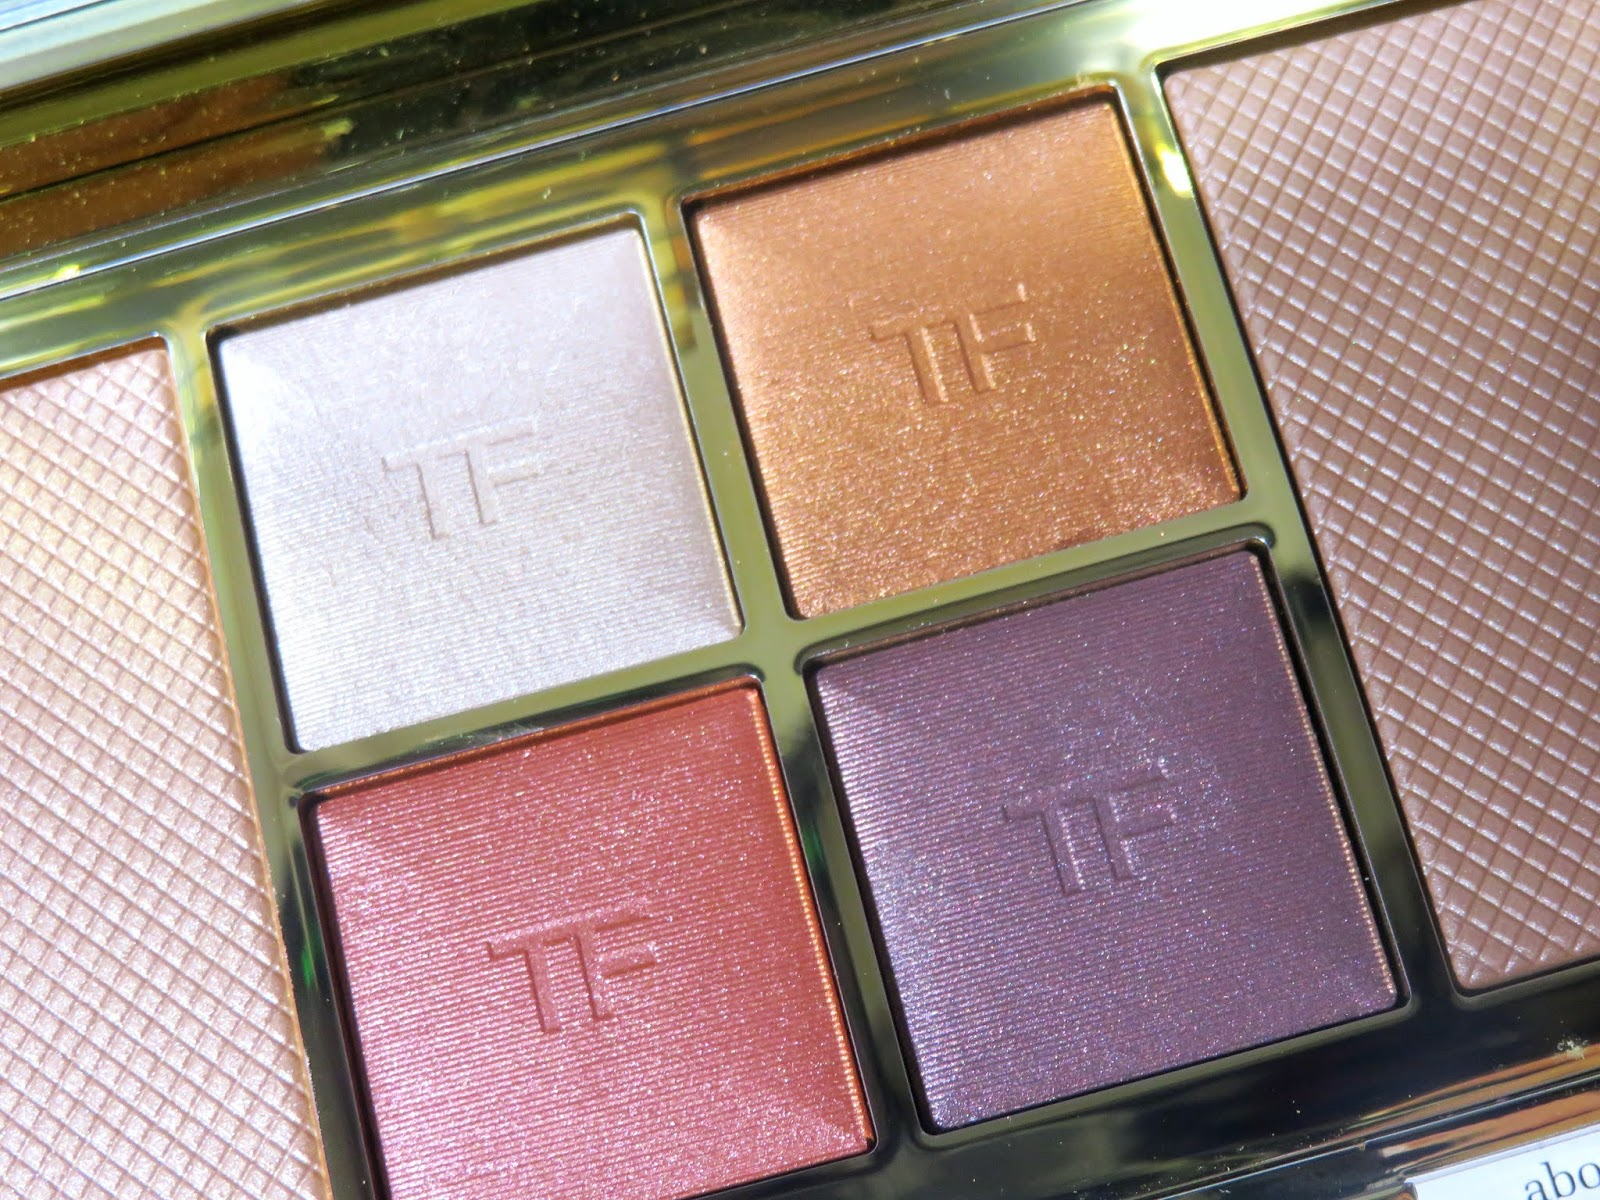 Tom Ford Shade and Illuminate Face & Eye Palette in Red Harness Review and Swatches